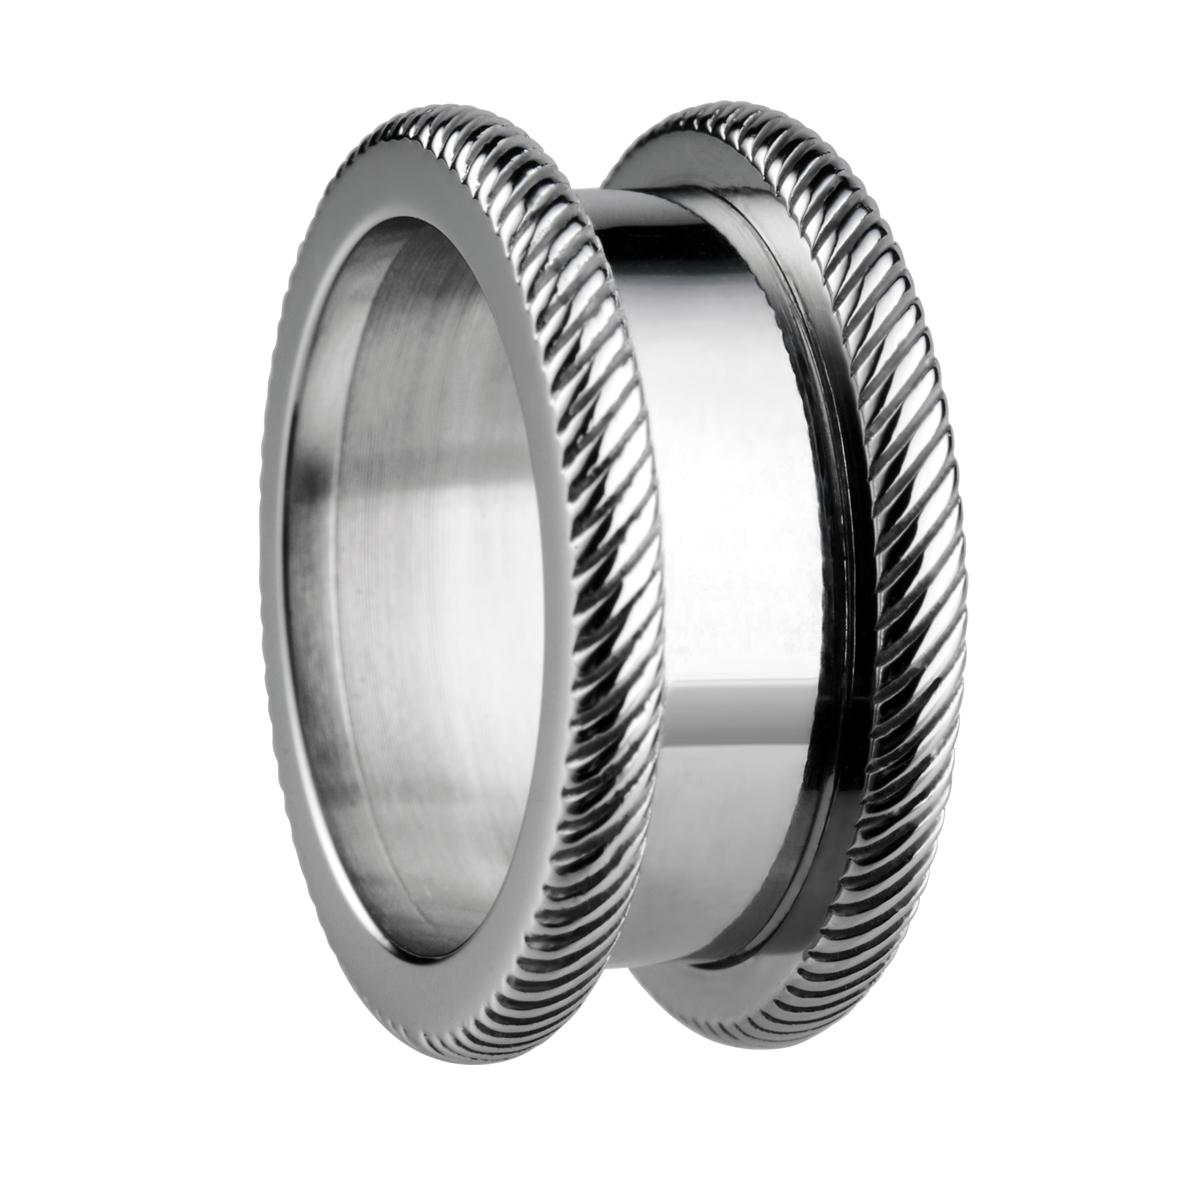 Bering Outer Ring 5211084 1